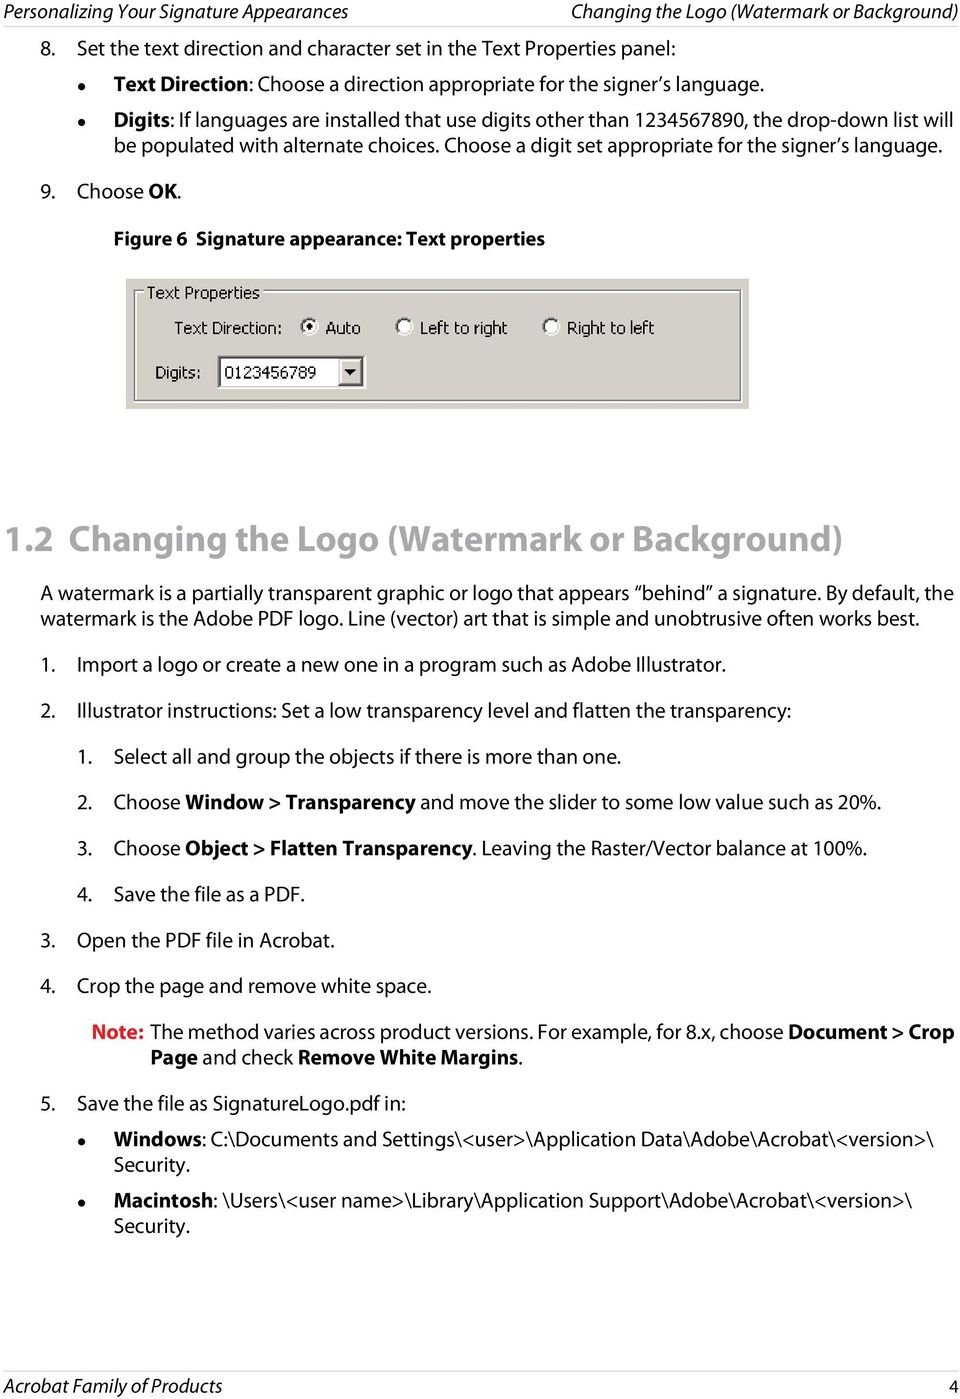 Personalizing Your Signature Appearances - PDF